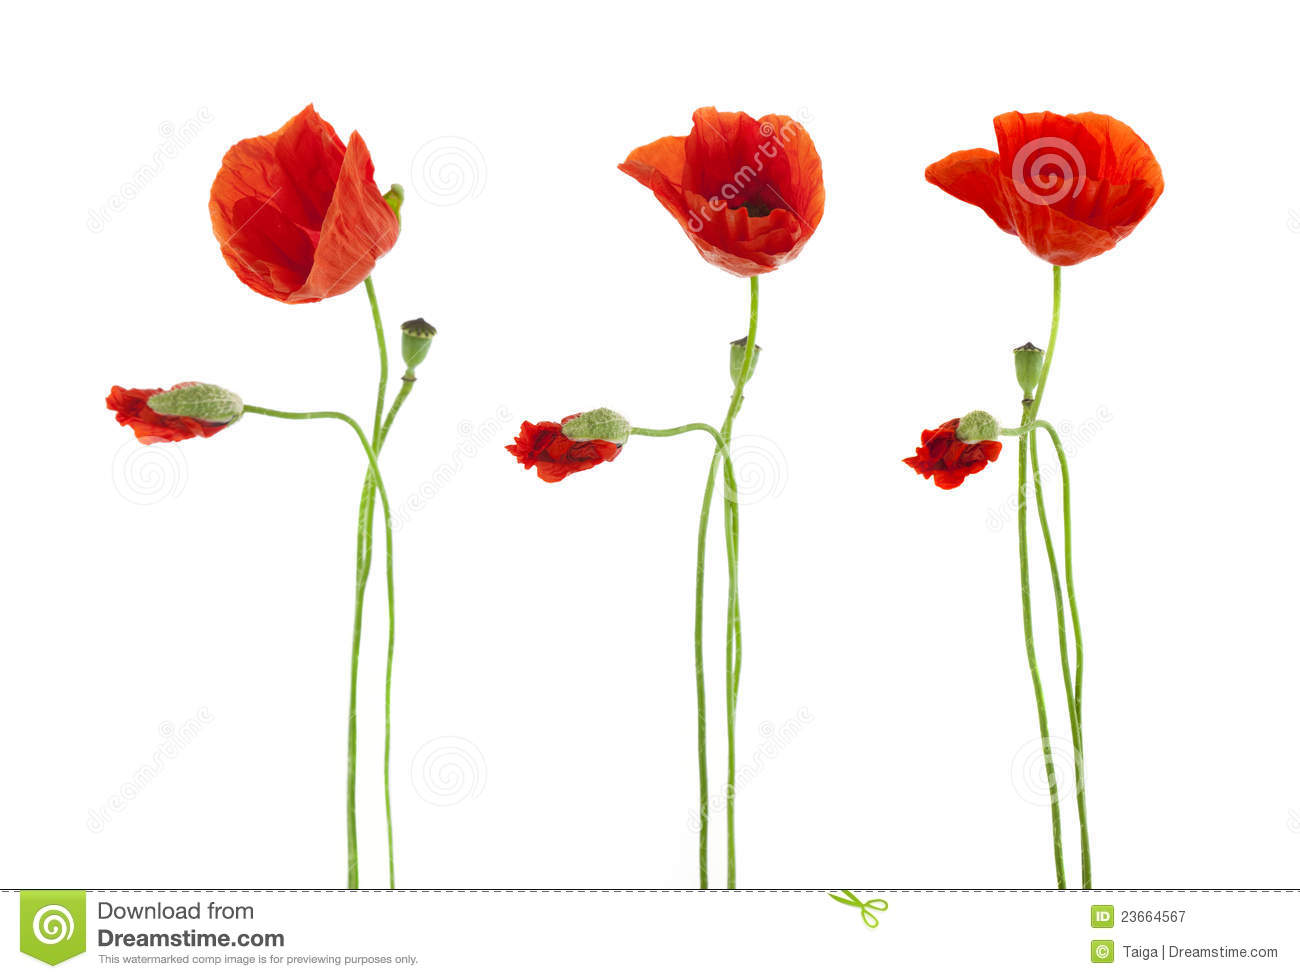 Trio of red poppies flowers isolated stock image image of image download comp mightylinksfo